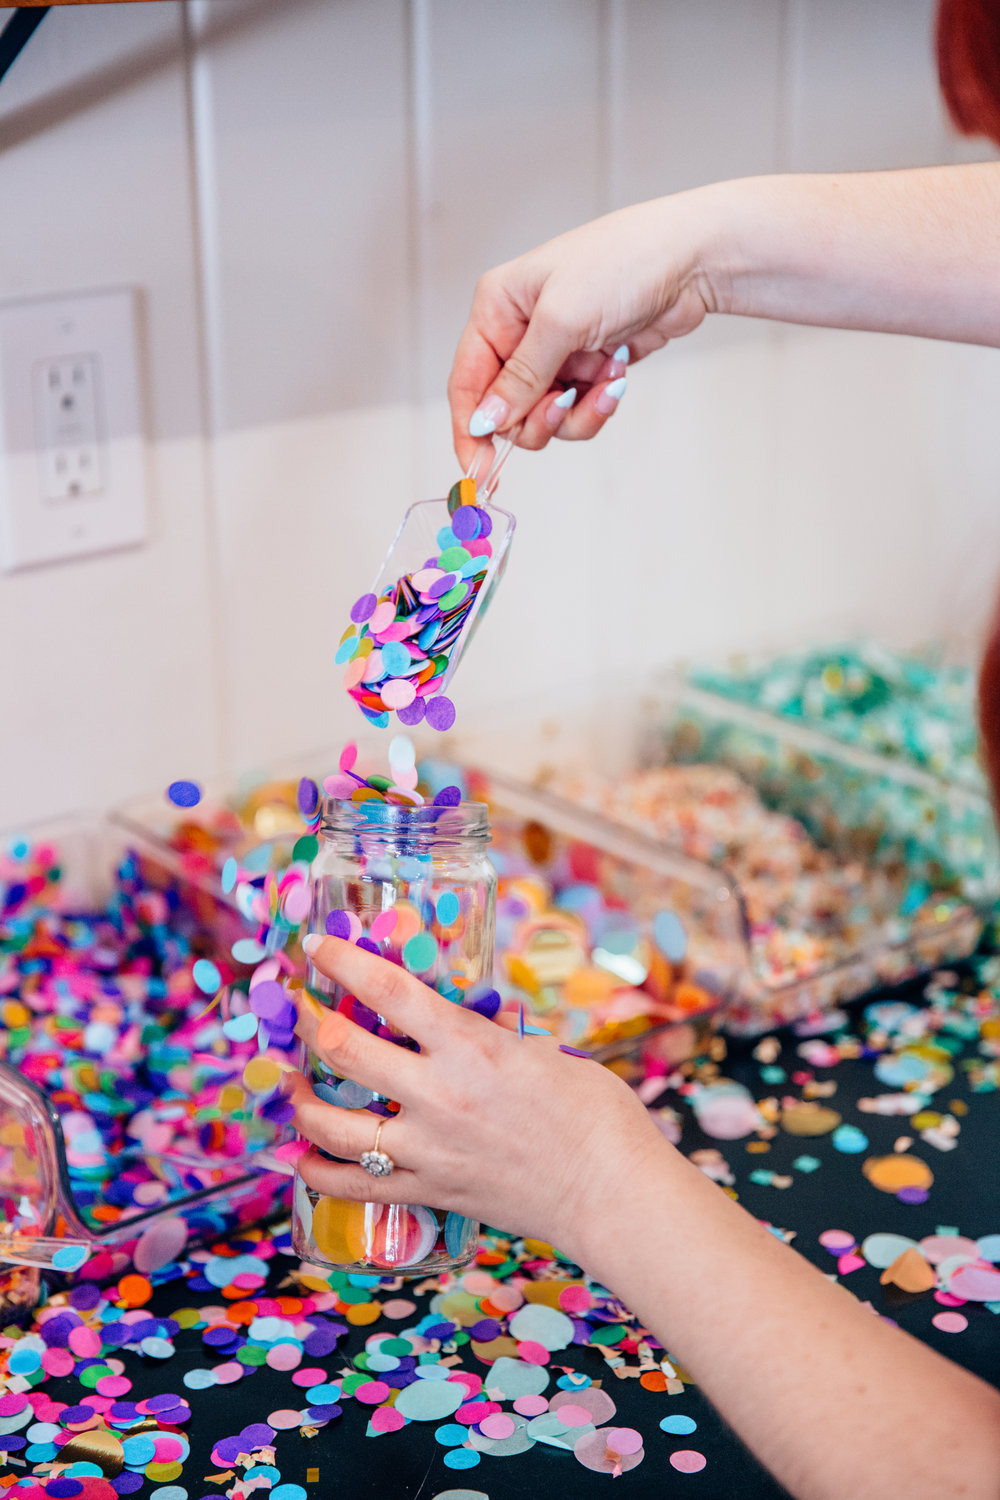 Time to make a jar of joy to sprinkle in a little fun into your day!